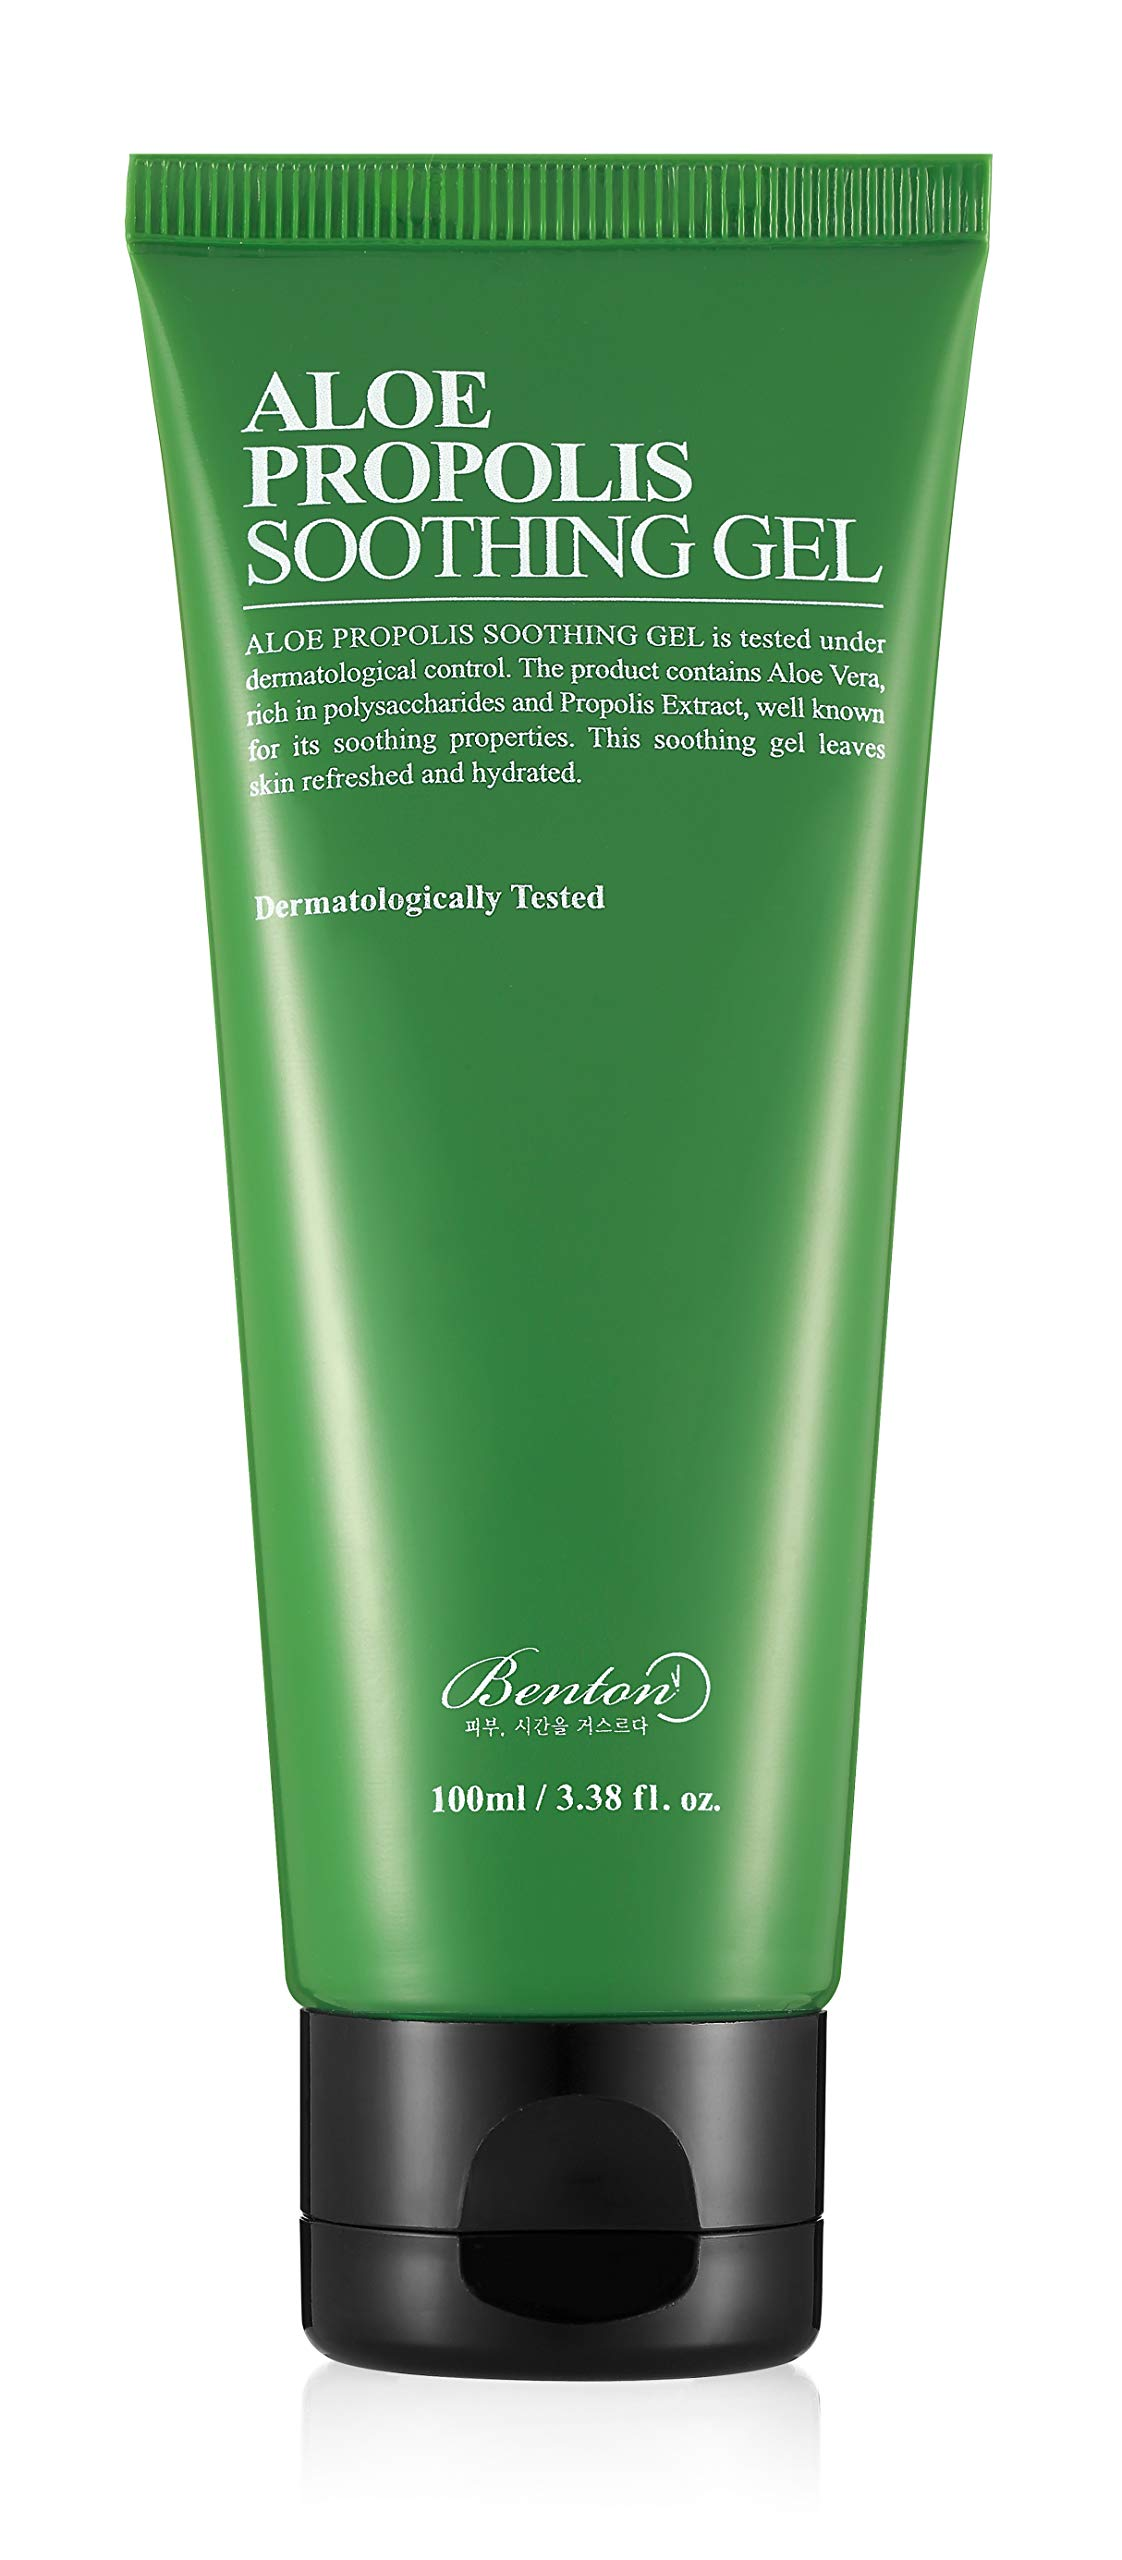 BENTON Aloe Propolis Soothing Gel, 100ml by BENTON